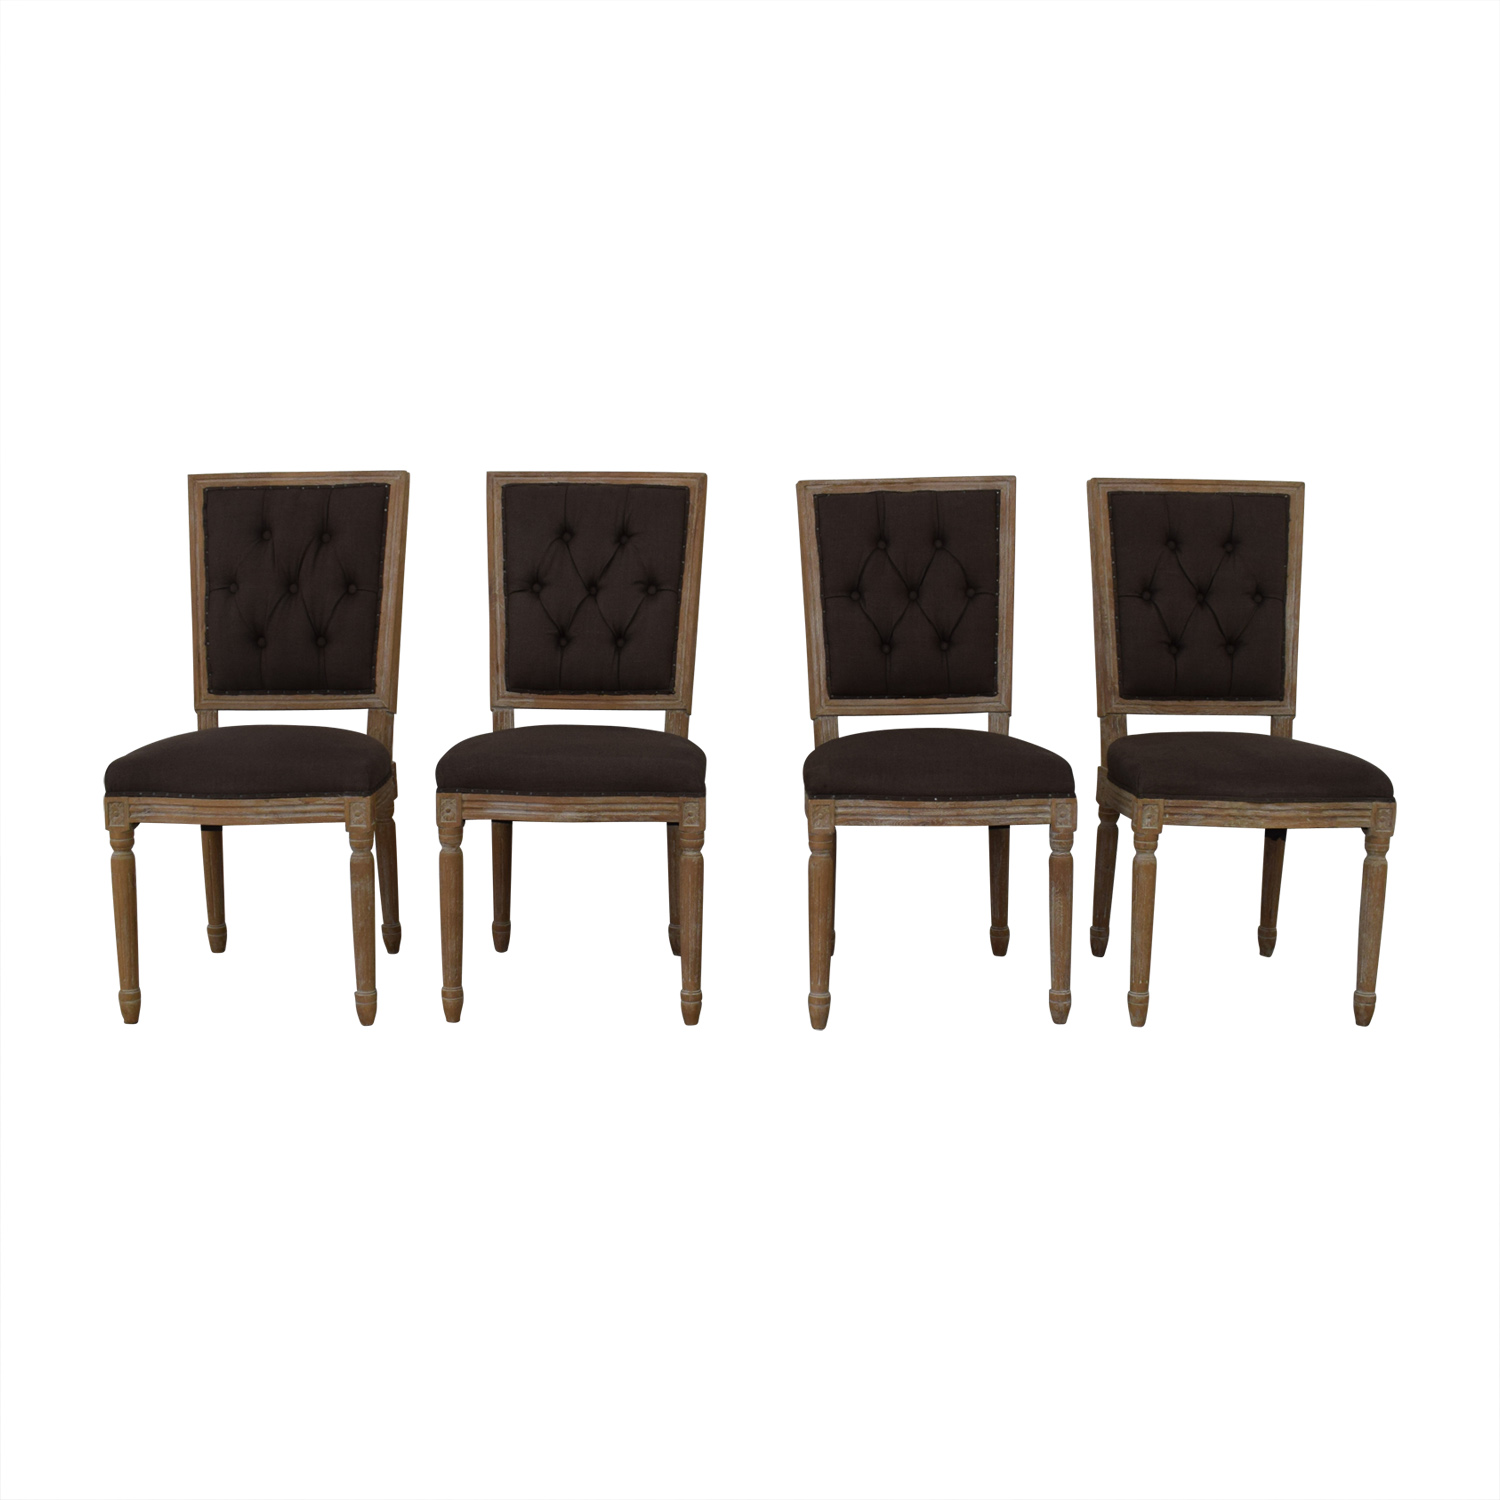 Orient Express Furniture Elton Dining Chairs / Dining Chairs